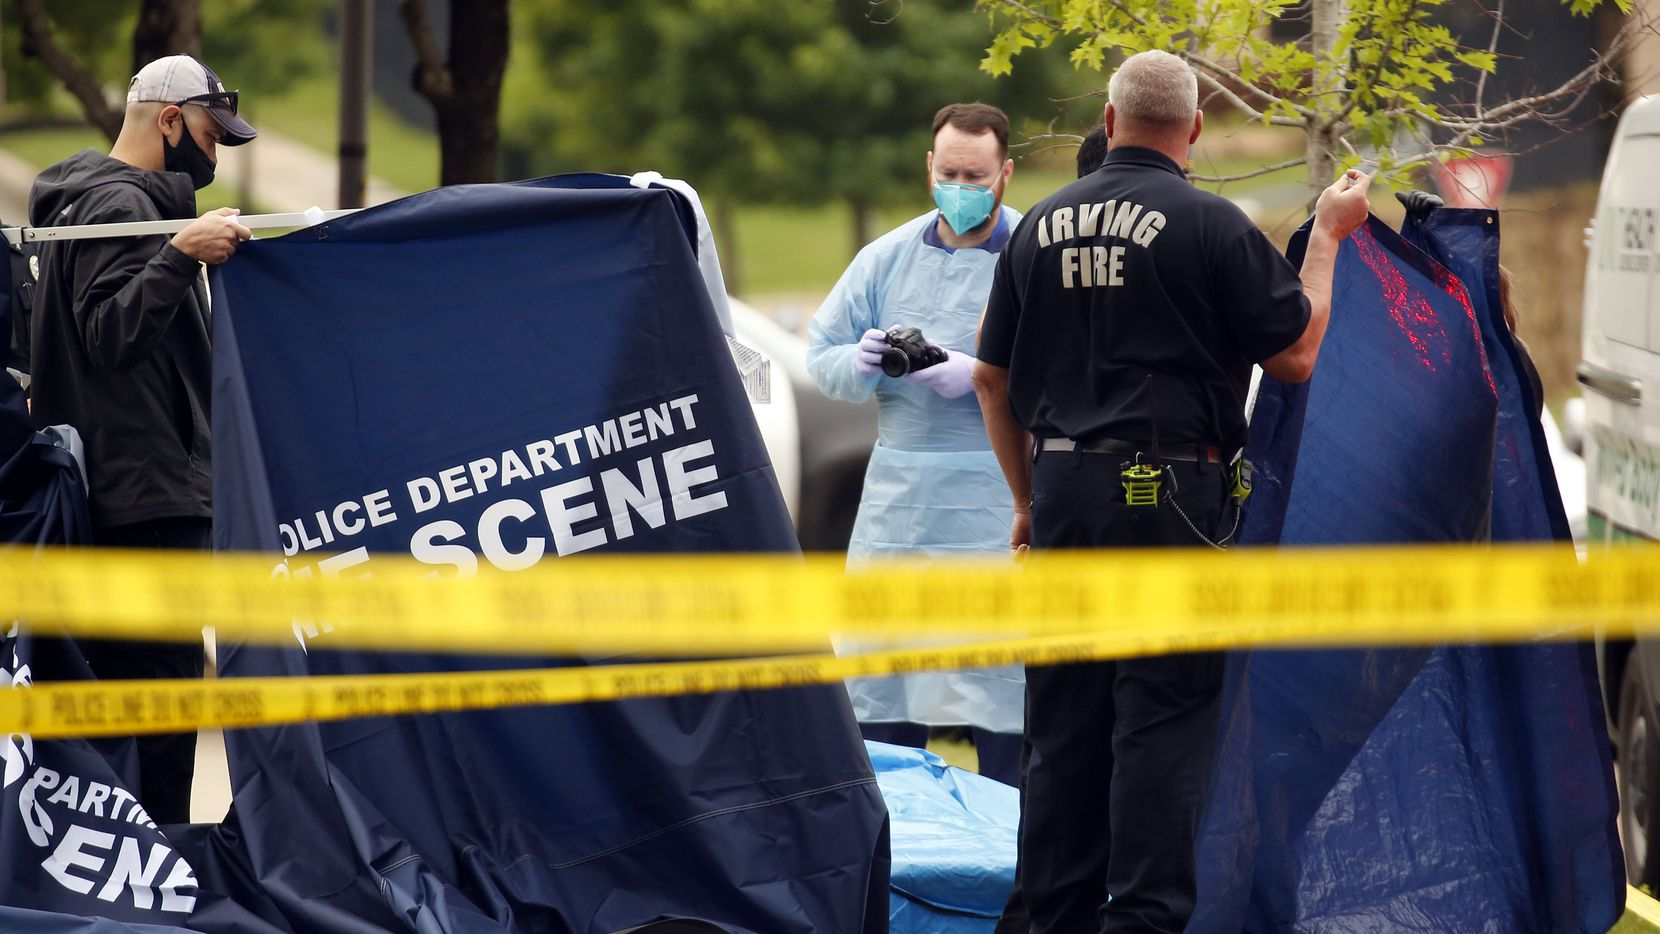 Irving Fire Department personnel and members of the medical examiners office inspect a woman recovered in the canal connected to Lago de Claire lake where Lashun Massey went missing near her Las Colinas home in Irving, Texas, Tuesday, April 27, 2021. The Texas Department of Transportation dive team located the woman who was wearing clothes matching the description of the reigning Mrs. Dallas pageant queen. Massey, 38, was last seen between 5:30 and 7 a.m. Tuesday walking near Lago de Claire, a small body of water close to Riverside Drive and East Royal Lane. She was wearing a black hoodie and checkered pajama pants. (Tom Fox/The Dallas Morning News)